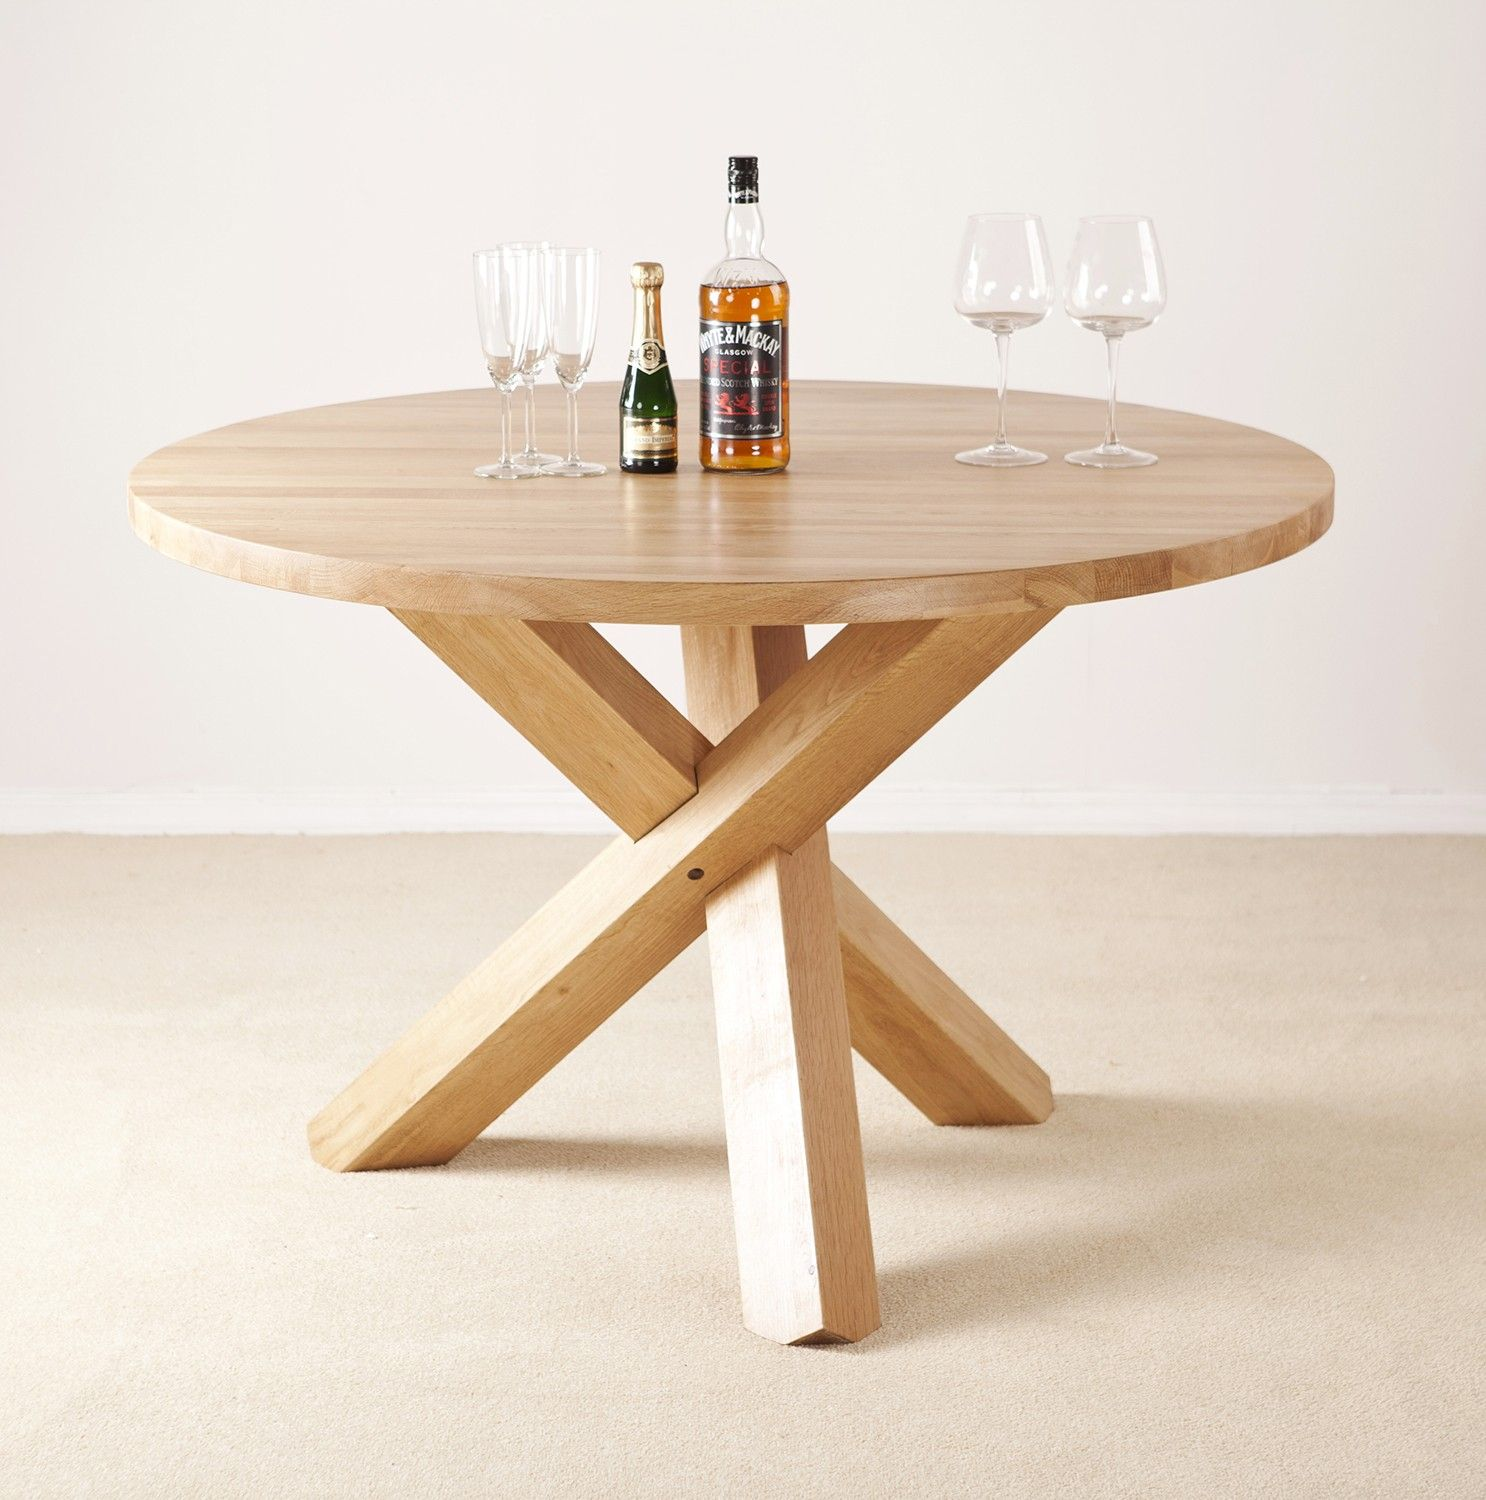 Claw Foot Pedestal Dining Table Images 40 Round